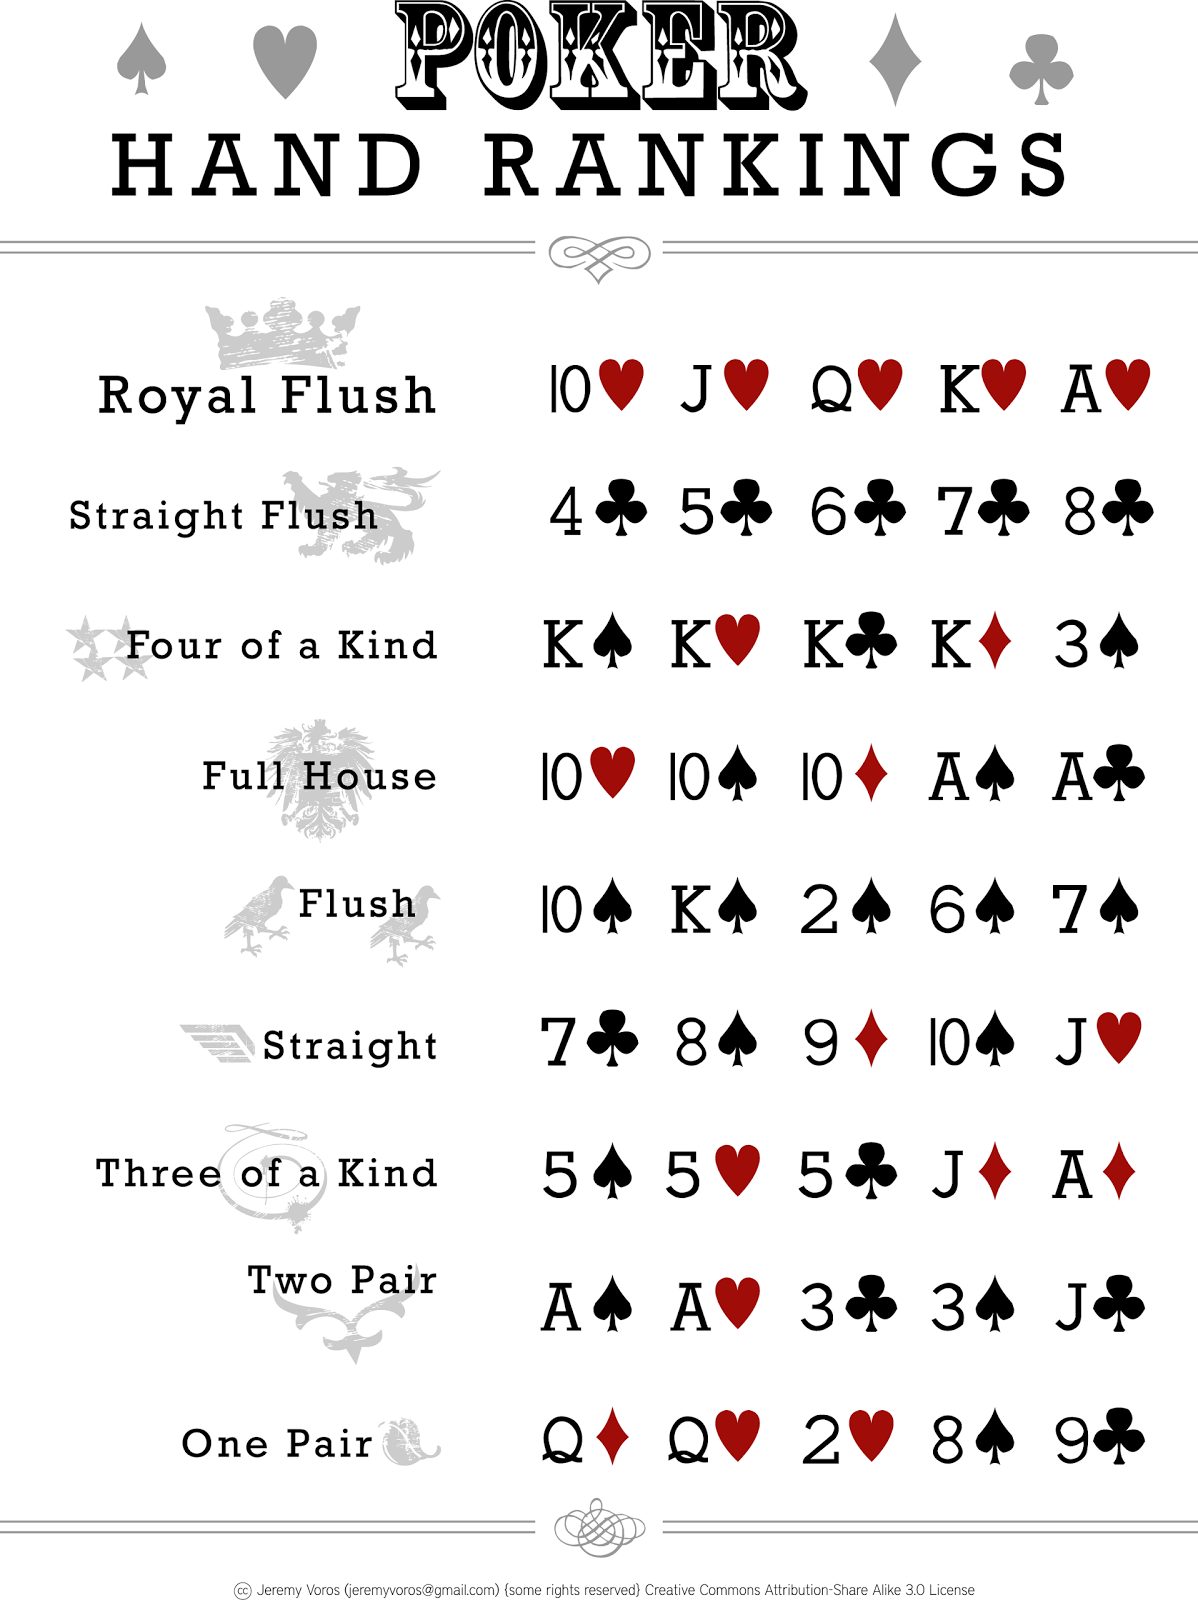 what is a flush in texas holdem